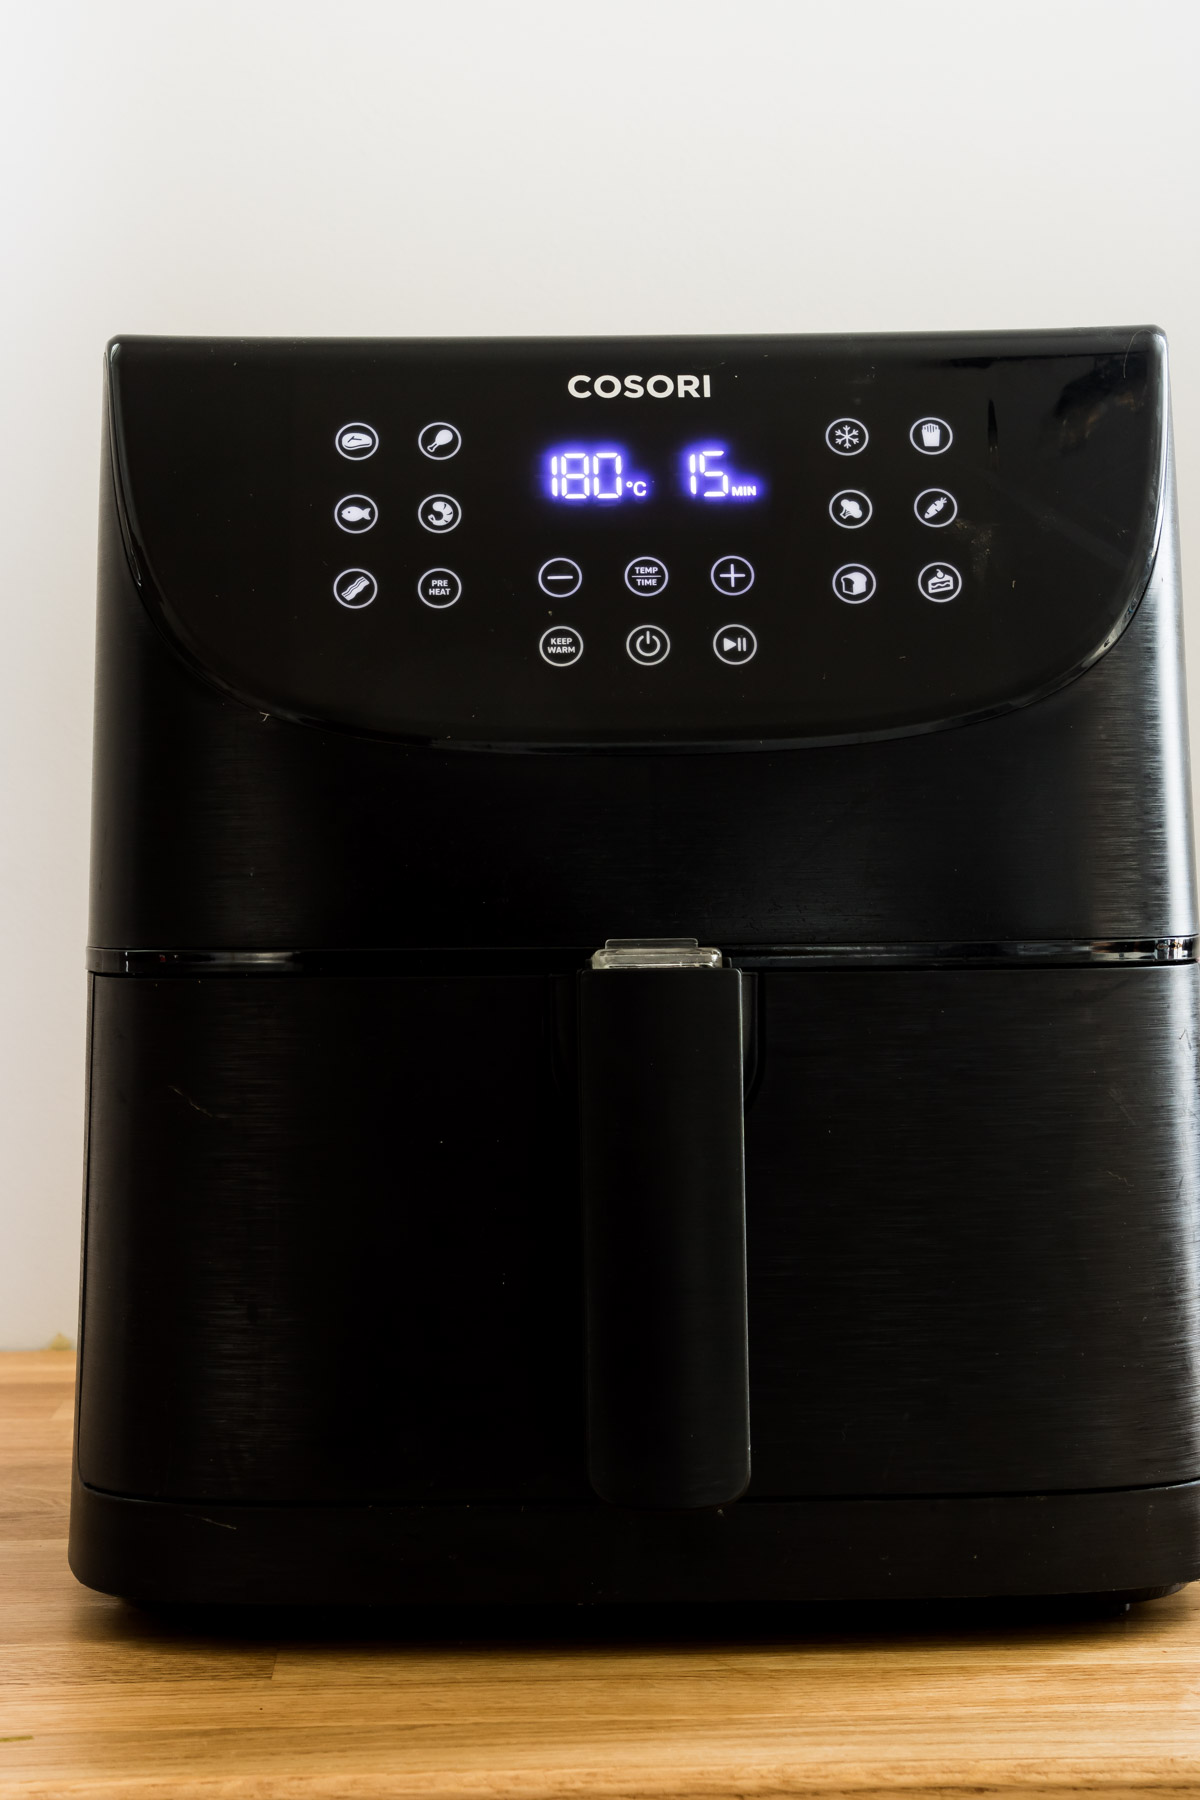 view of front panel showing how to preheat an air fryer